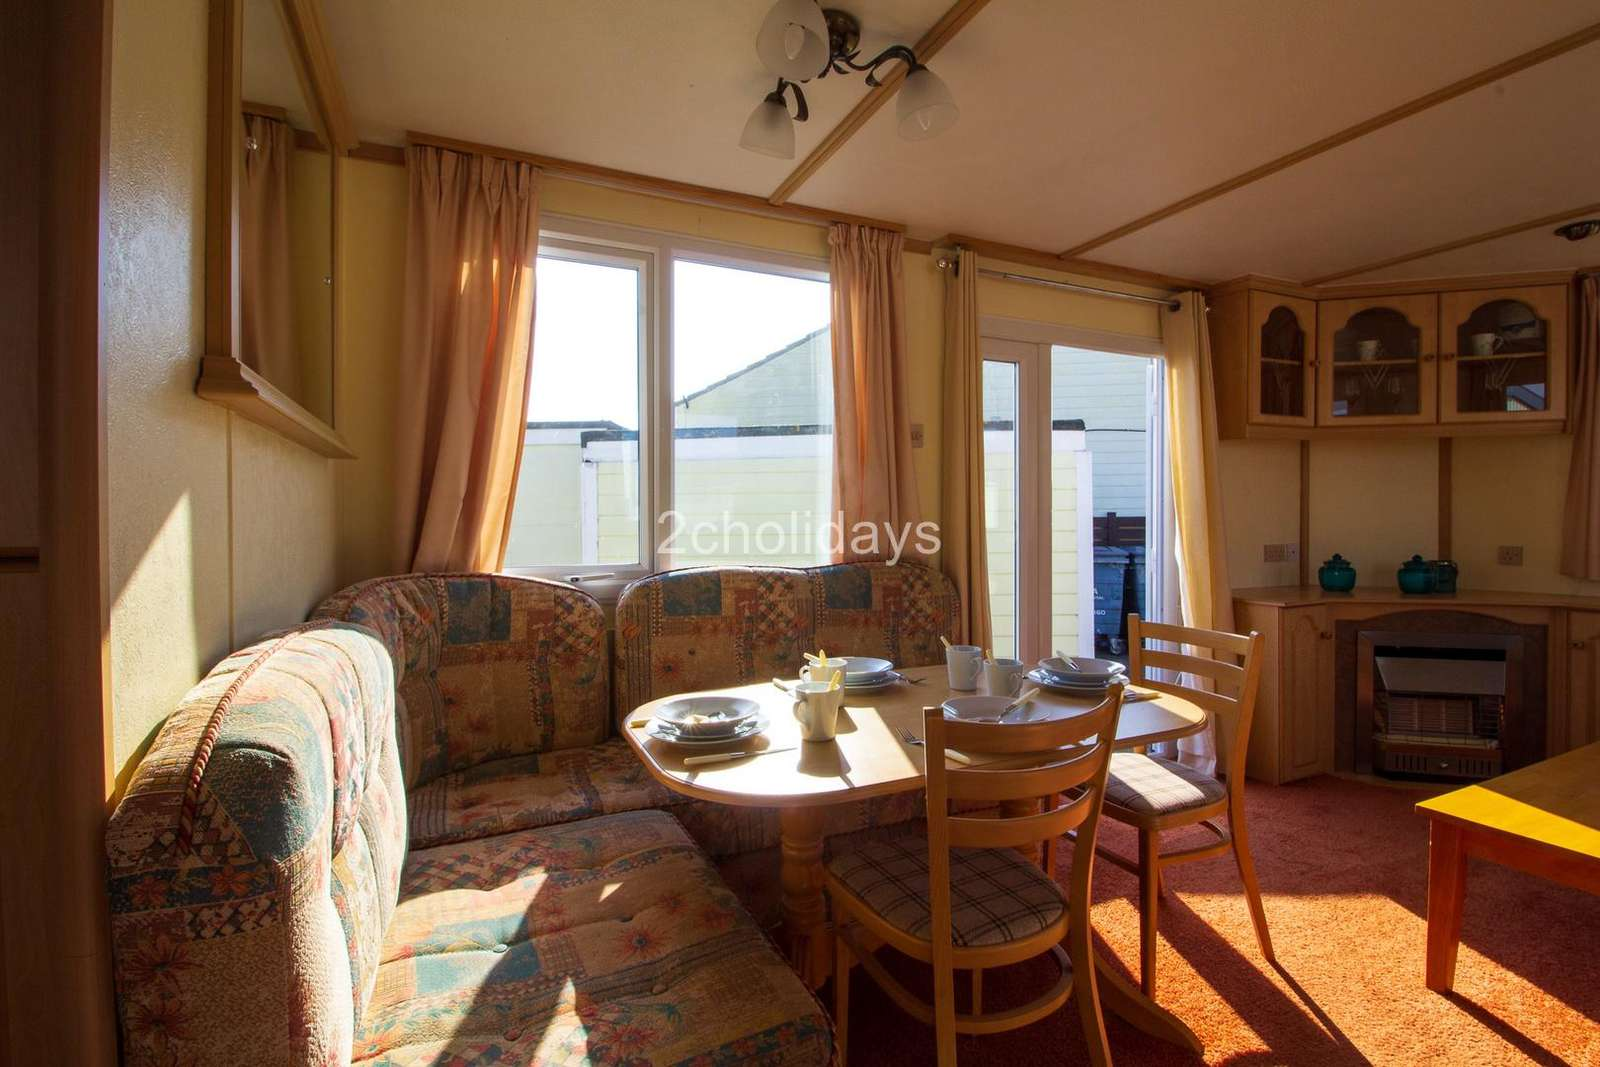 Come and stay in this private accommodation at St Osyth Beach Holiday Park